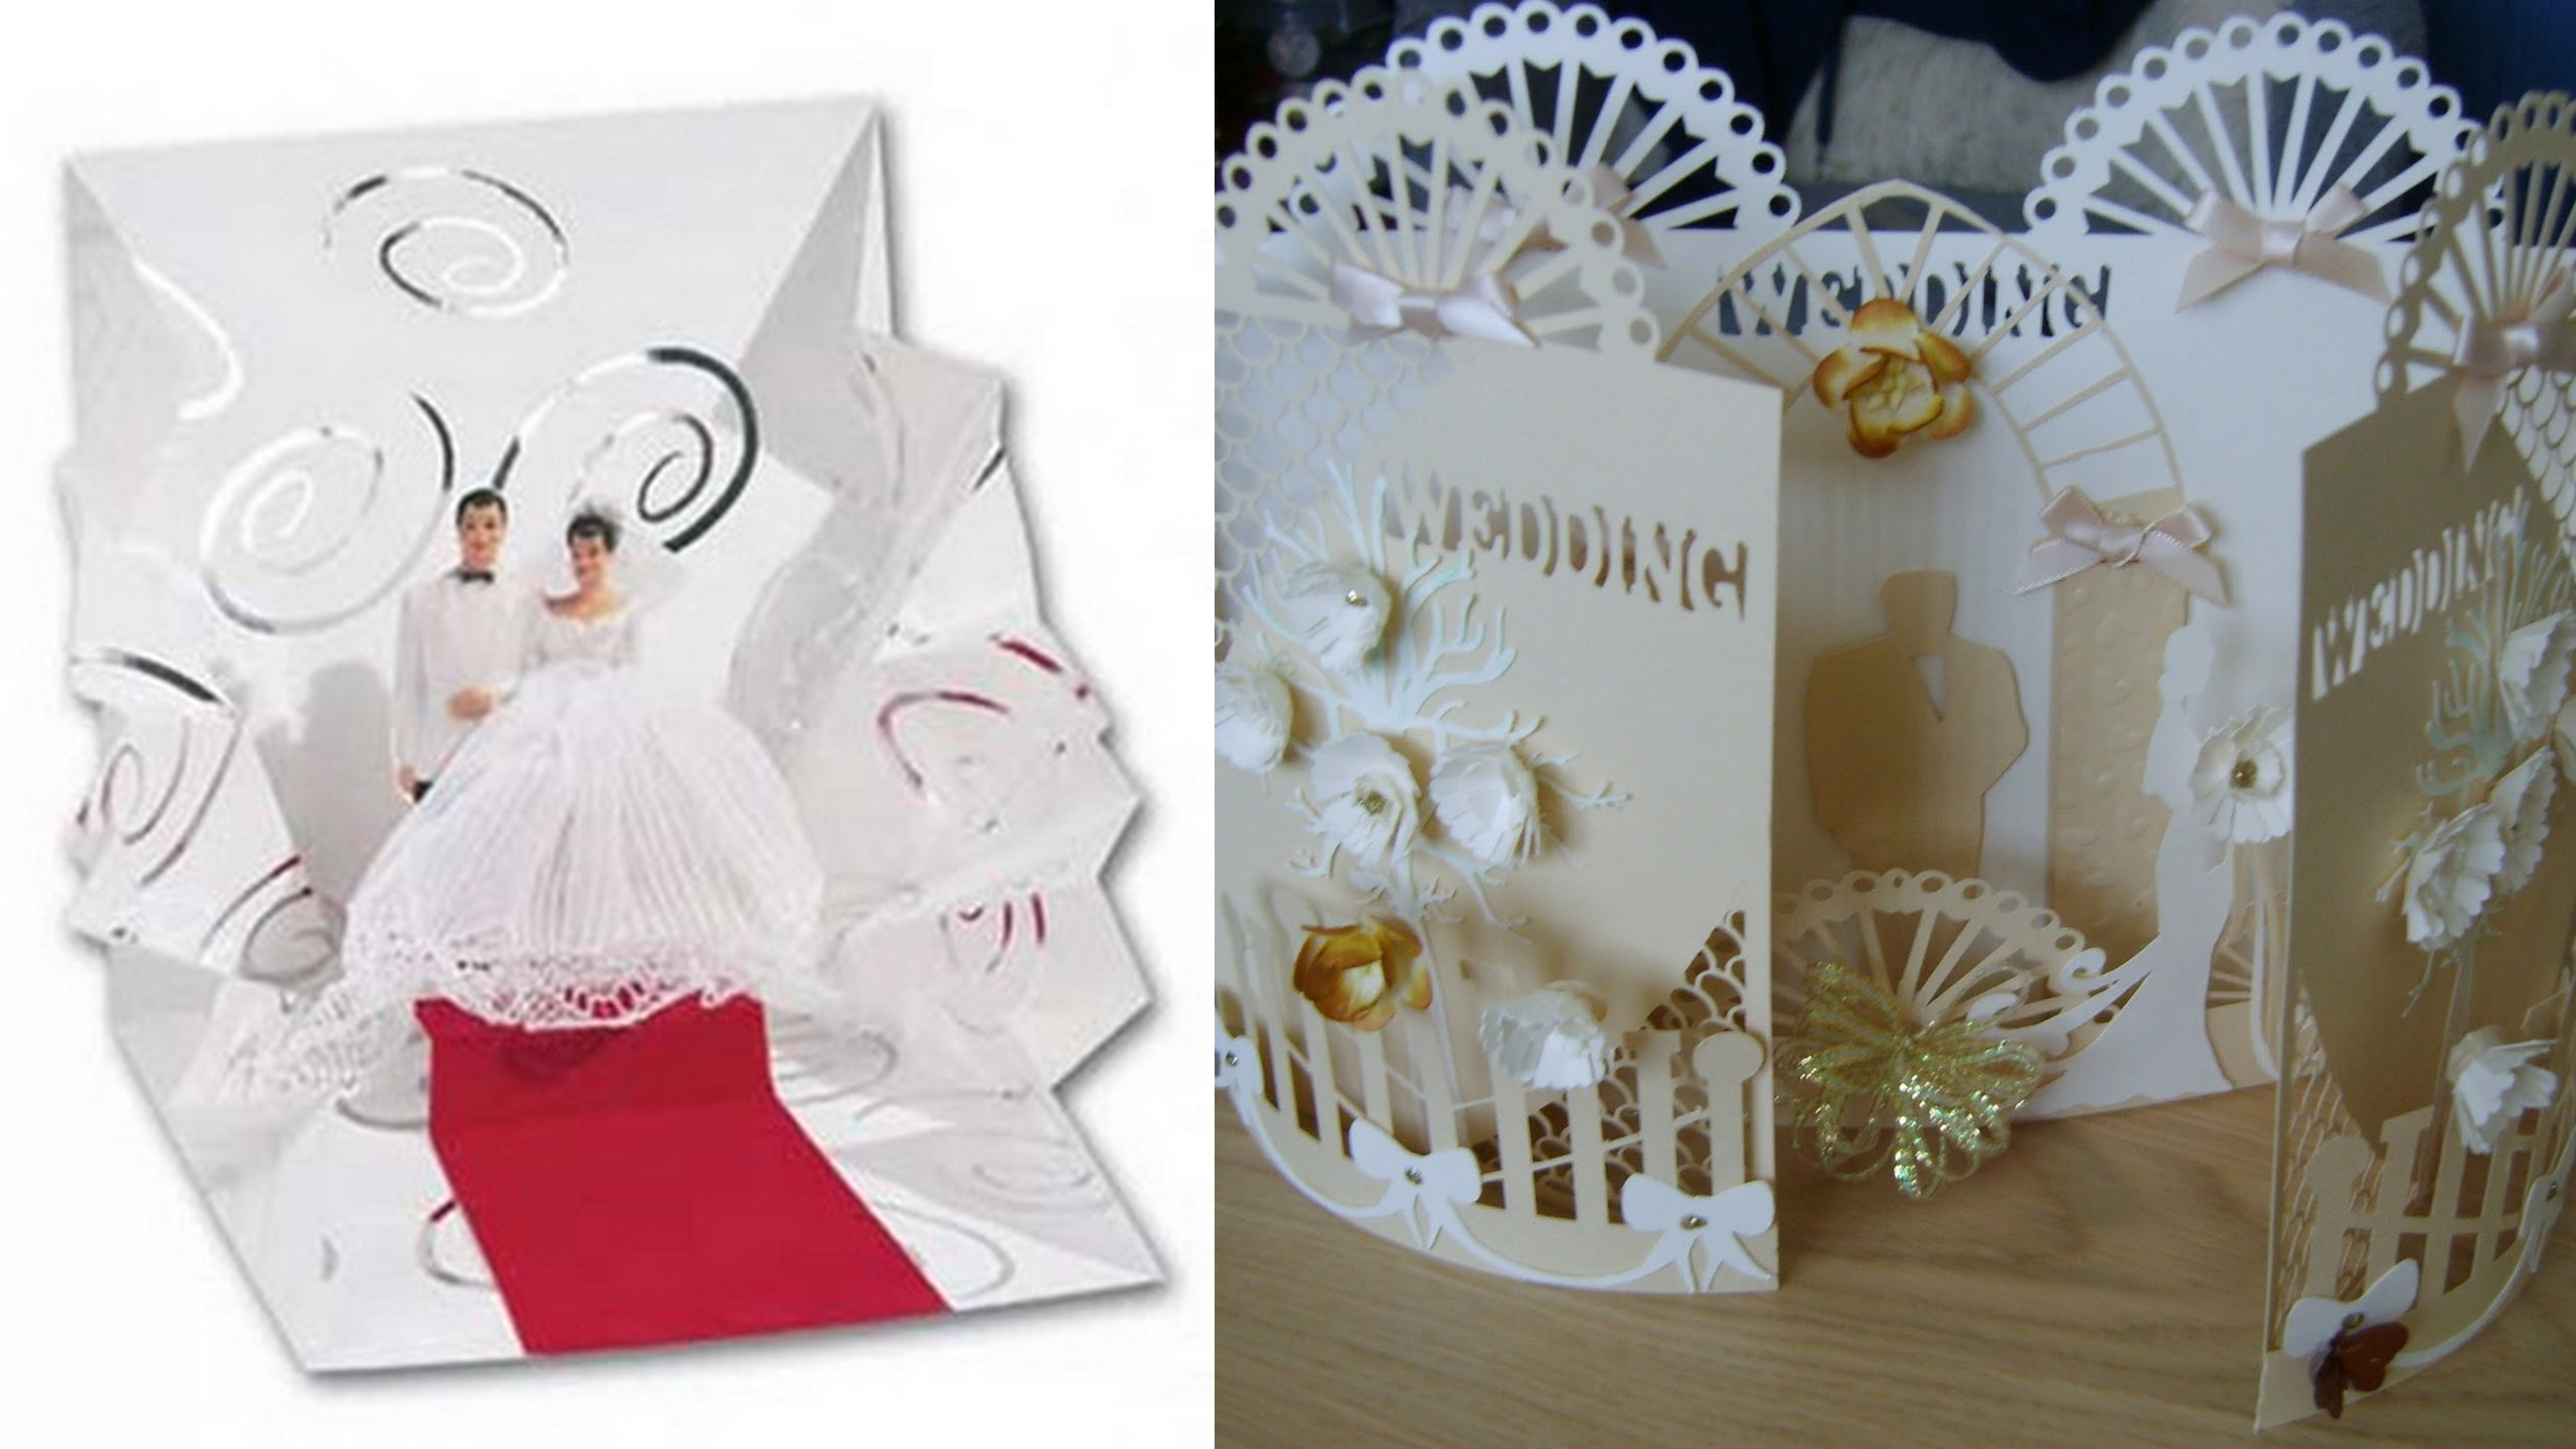 Wedding Invitation Cards Trends in 2014 | IndianWeddingCards